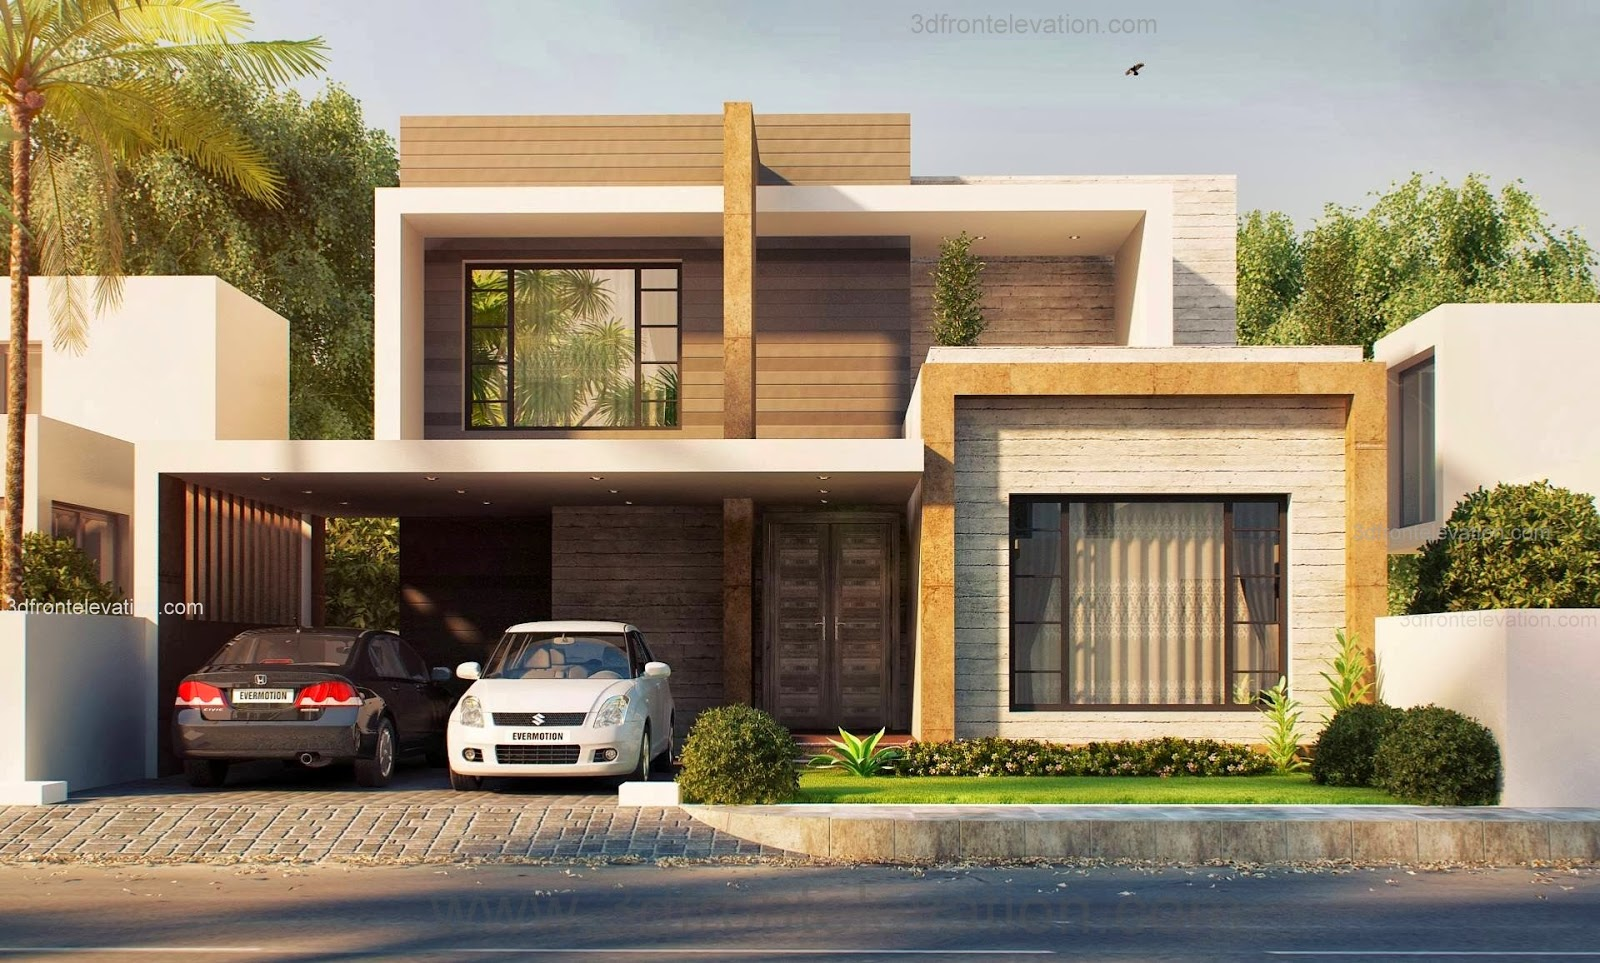 House plans and design architectural design of 10 marla for 10 marla home designs in pakistan